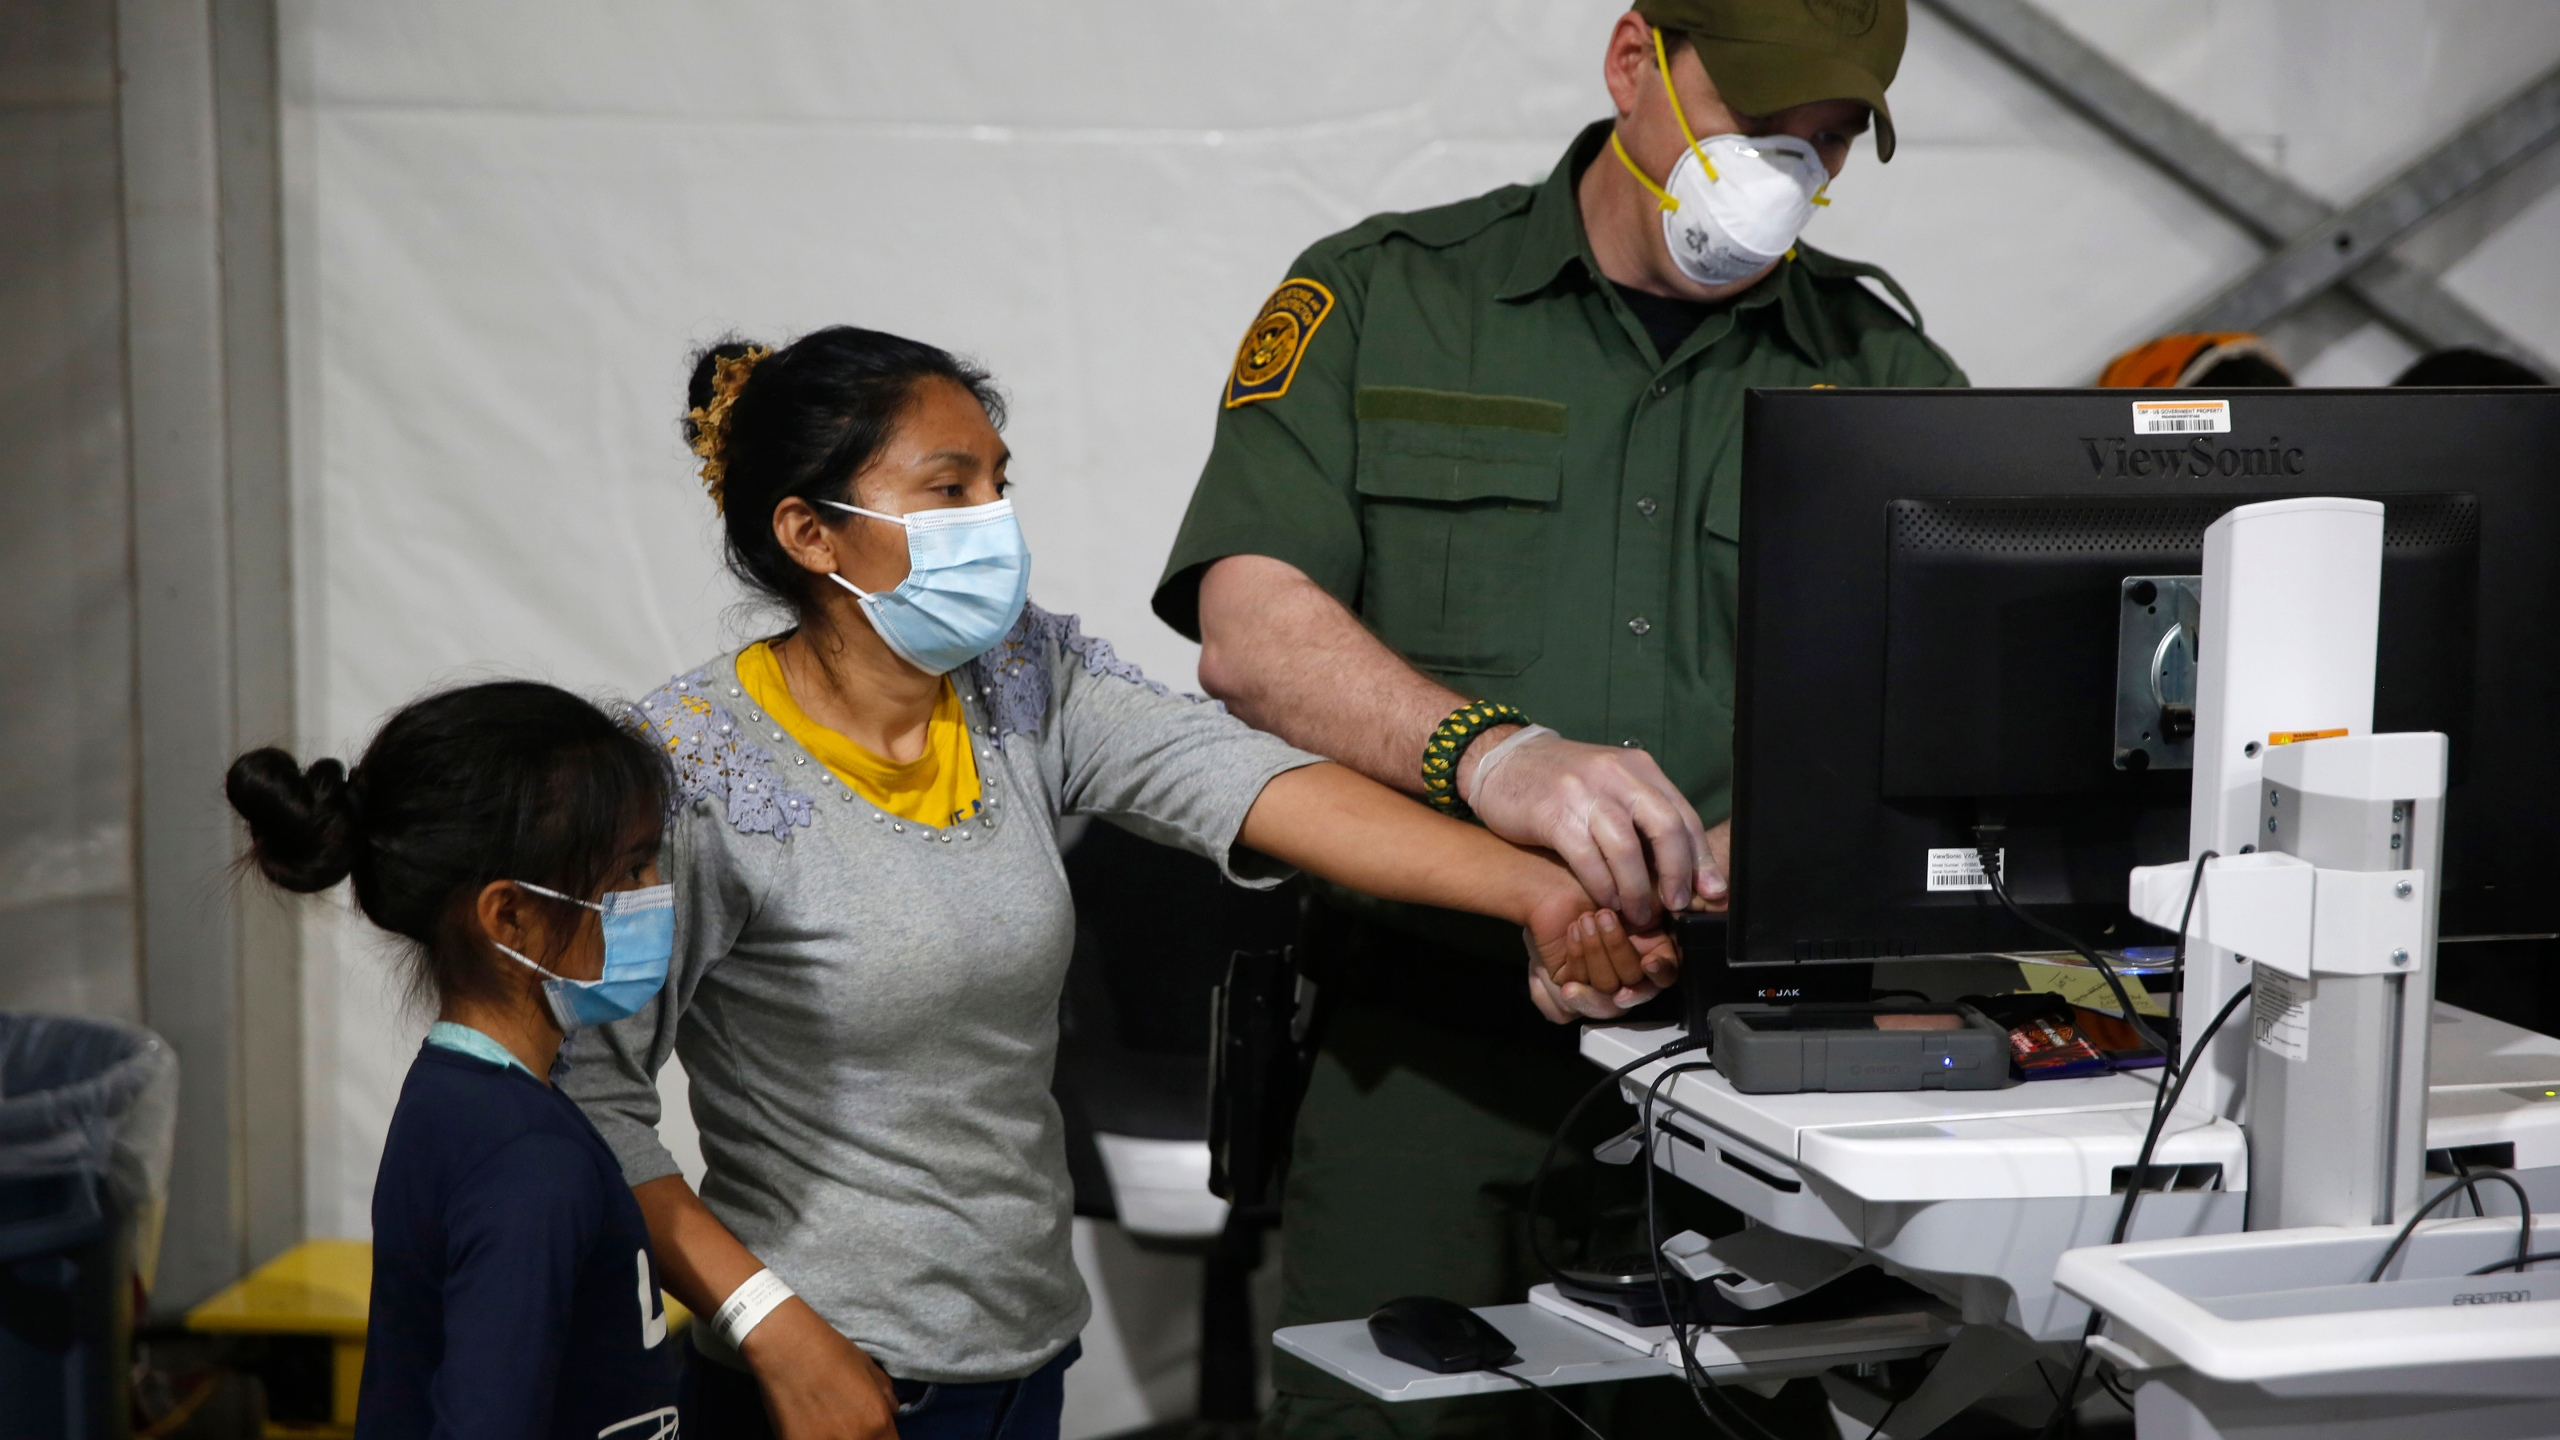 A migrant and her daughter have their biometric data entered at the intake area of the Donna Department of Homeland Security holding facility, the main detention center for unaccompanied children in the Rio Grande Valley, in Donna, Texas, on March 30, 2021. (AP Photo/Dario Lopez-Mills, Pool)